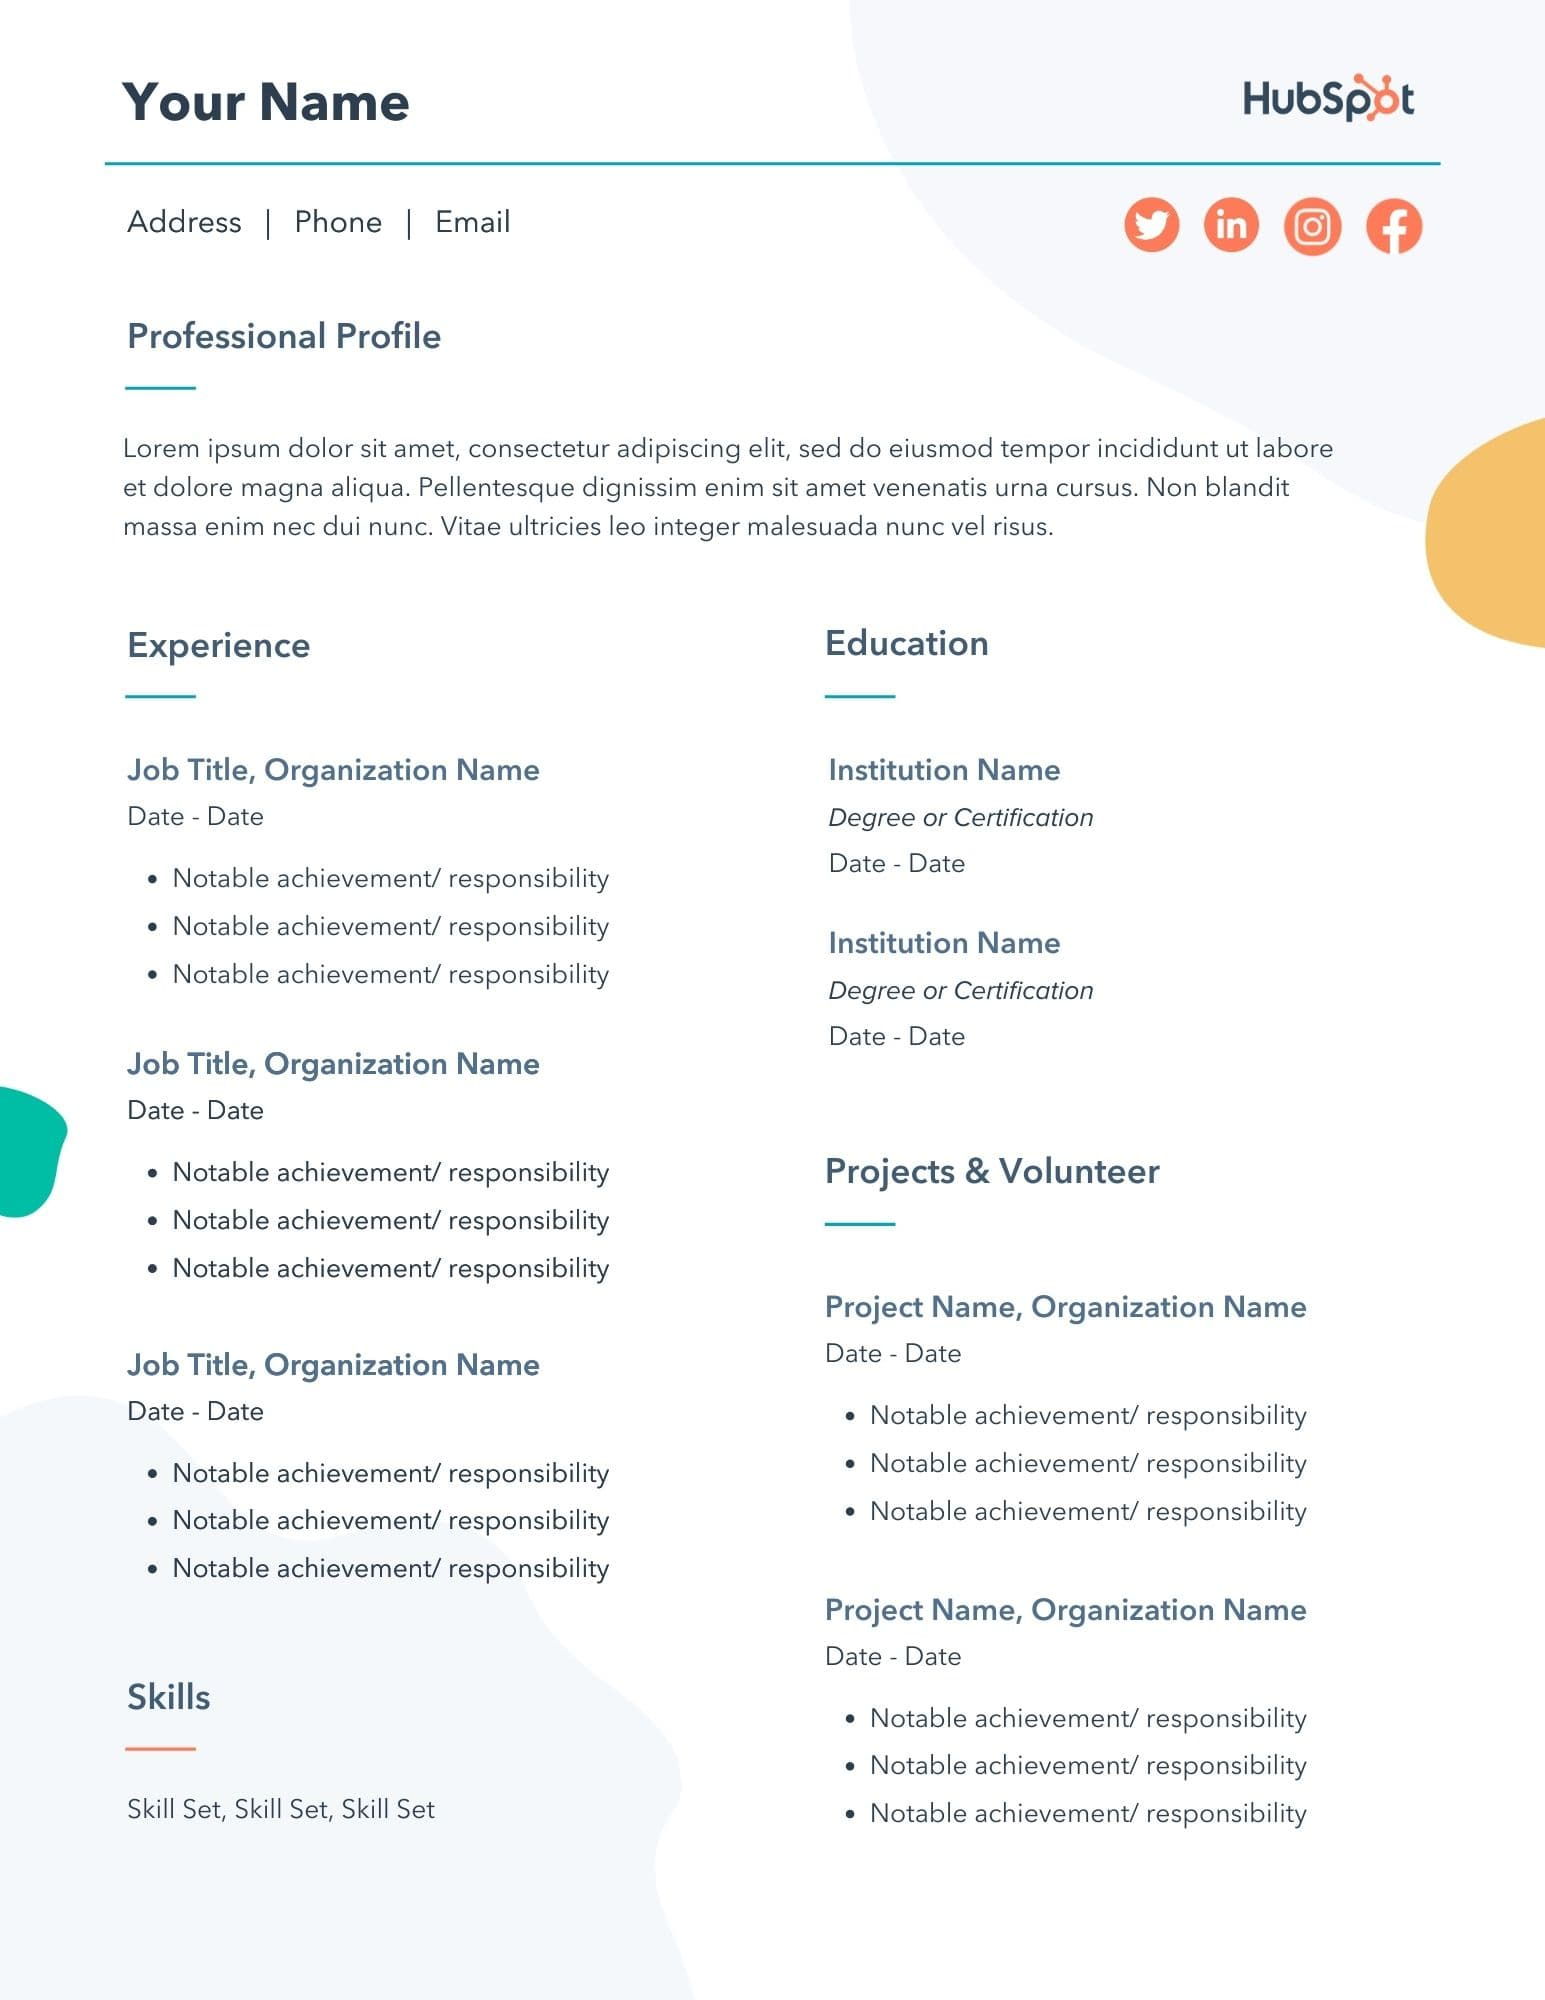 free resume templates for microsoft word to make your own and job description match Resume Free Resume And Job Description Match